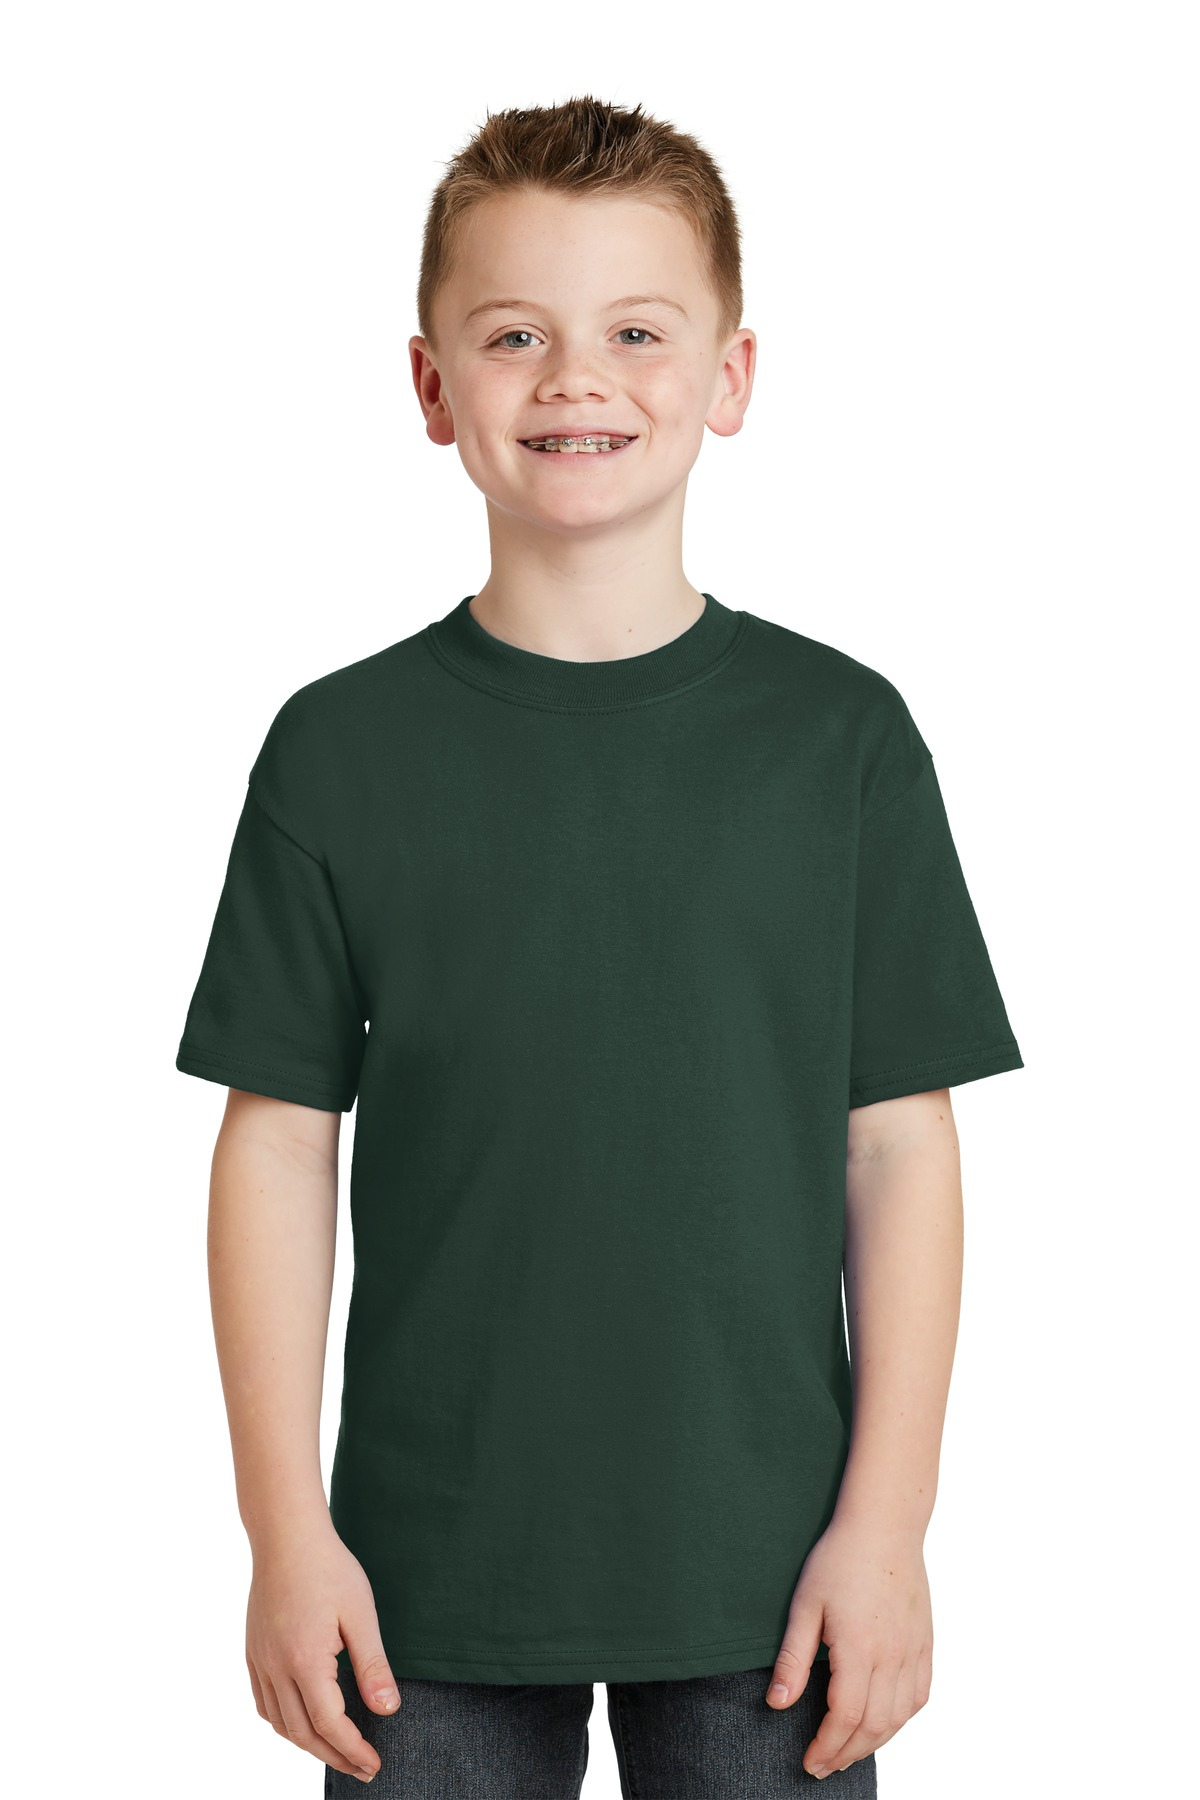 DISCONTINUED Hanes  -  Youth Beefy-T 100% Cotton T-Shirt.  5380